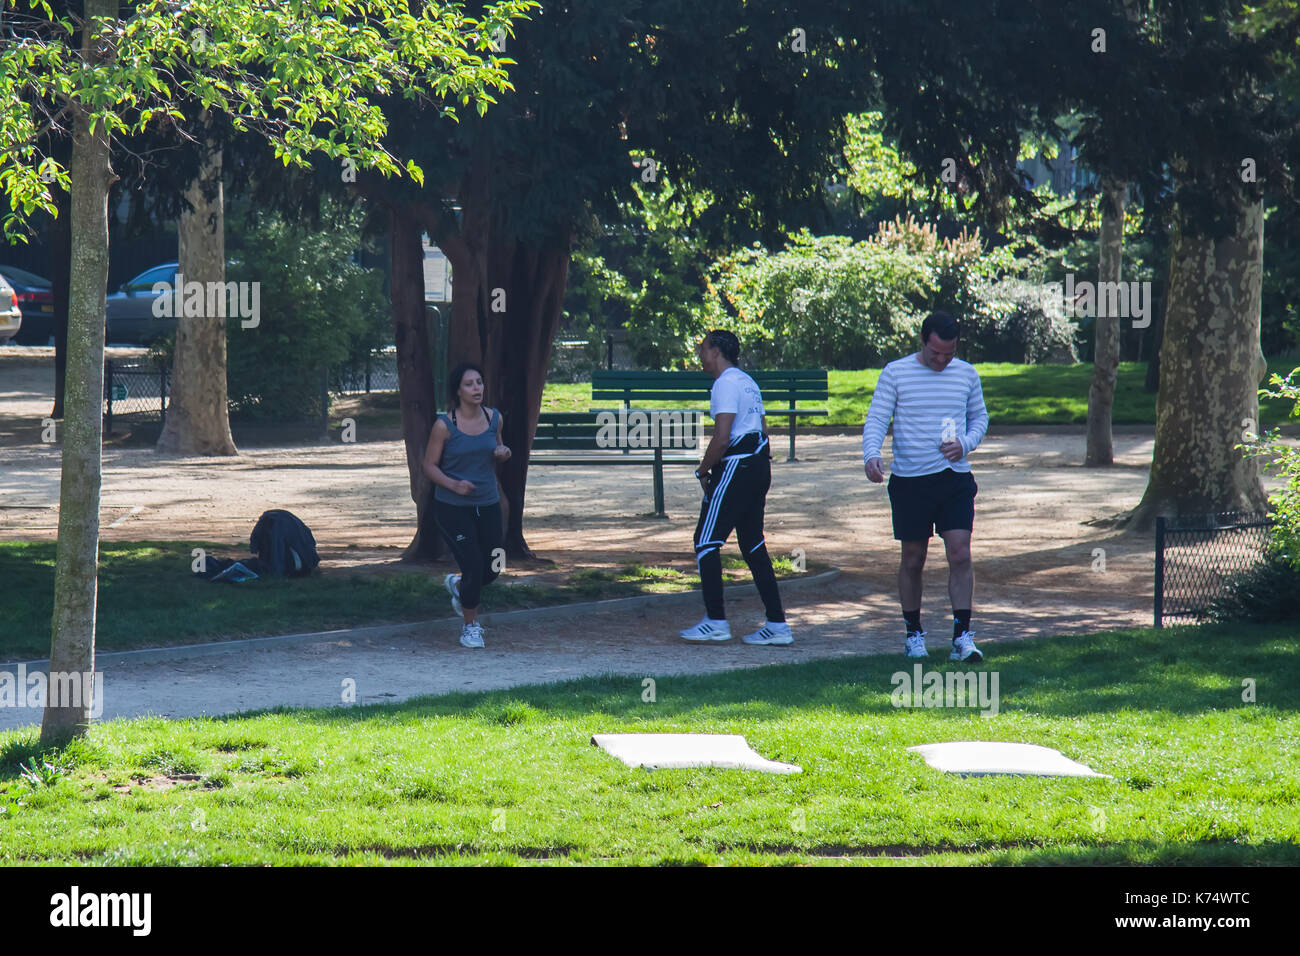 A group of people warming up for jogging in the park on a sunny day several days before The Paris International Marathon. Paris, France - Stock Image